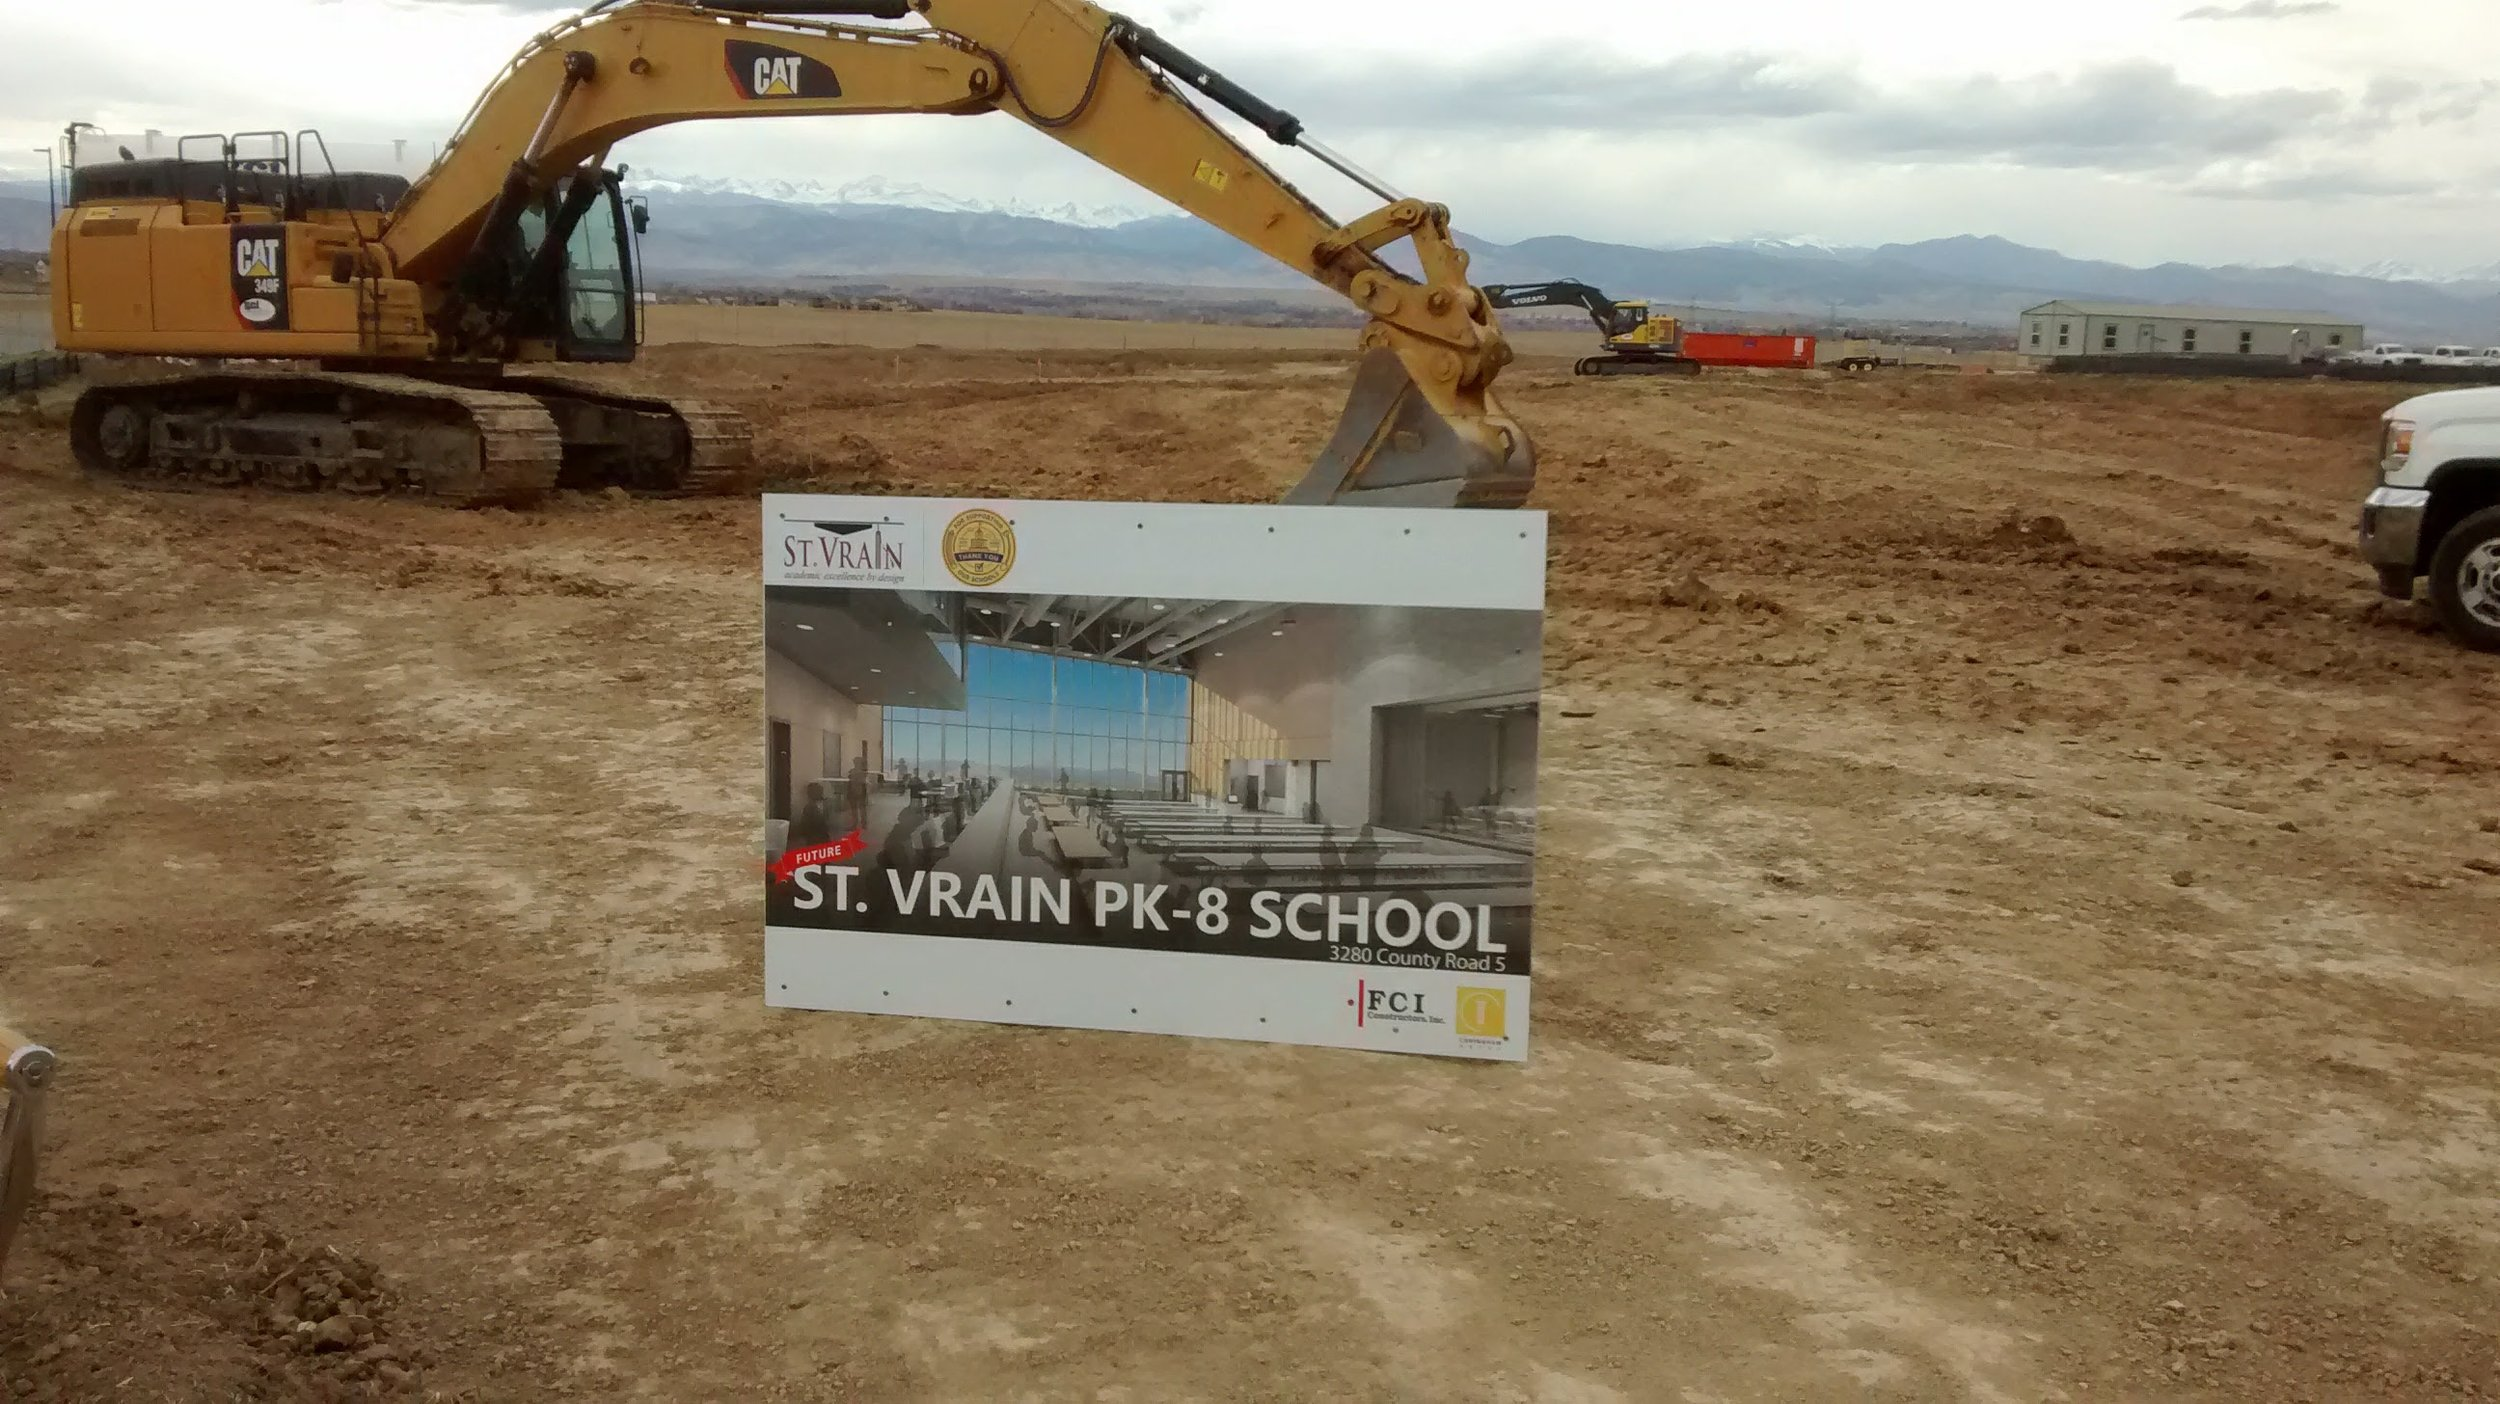 Project sign and excavator